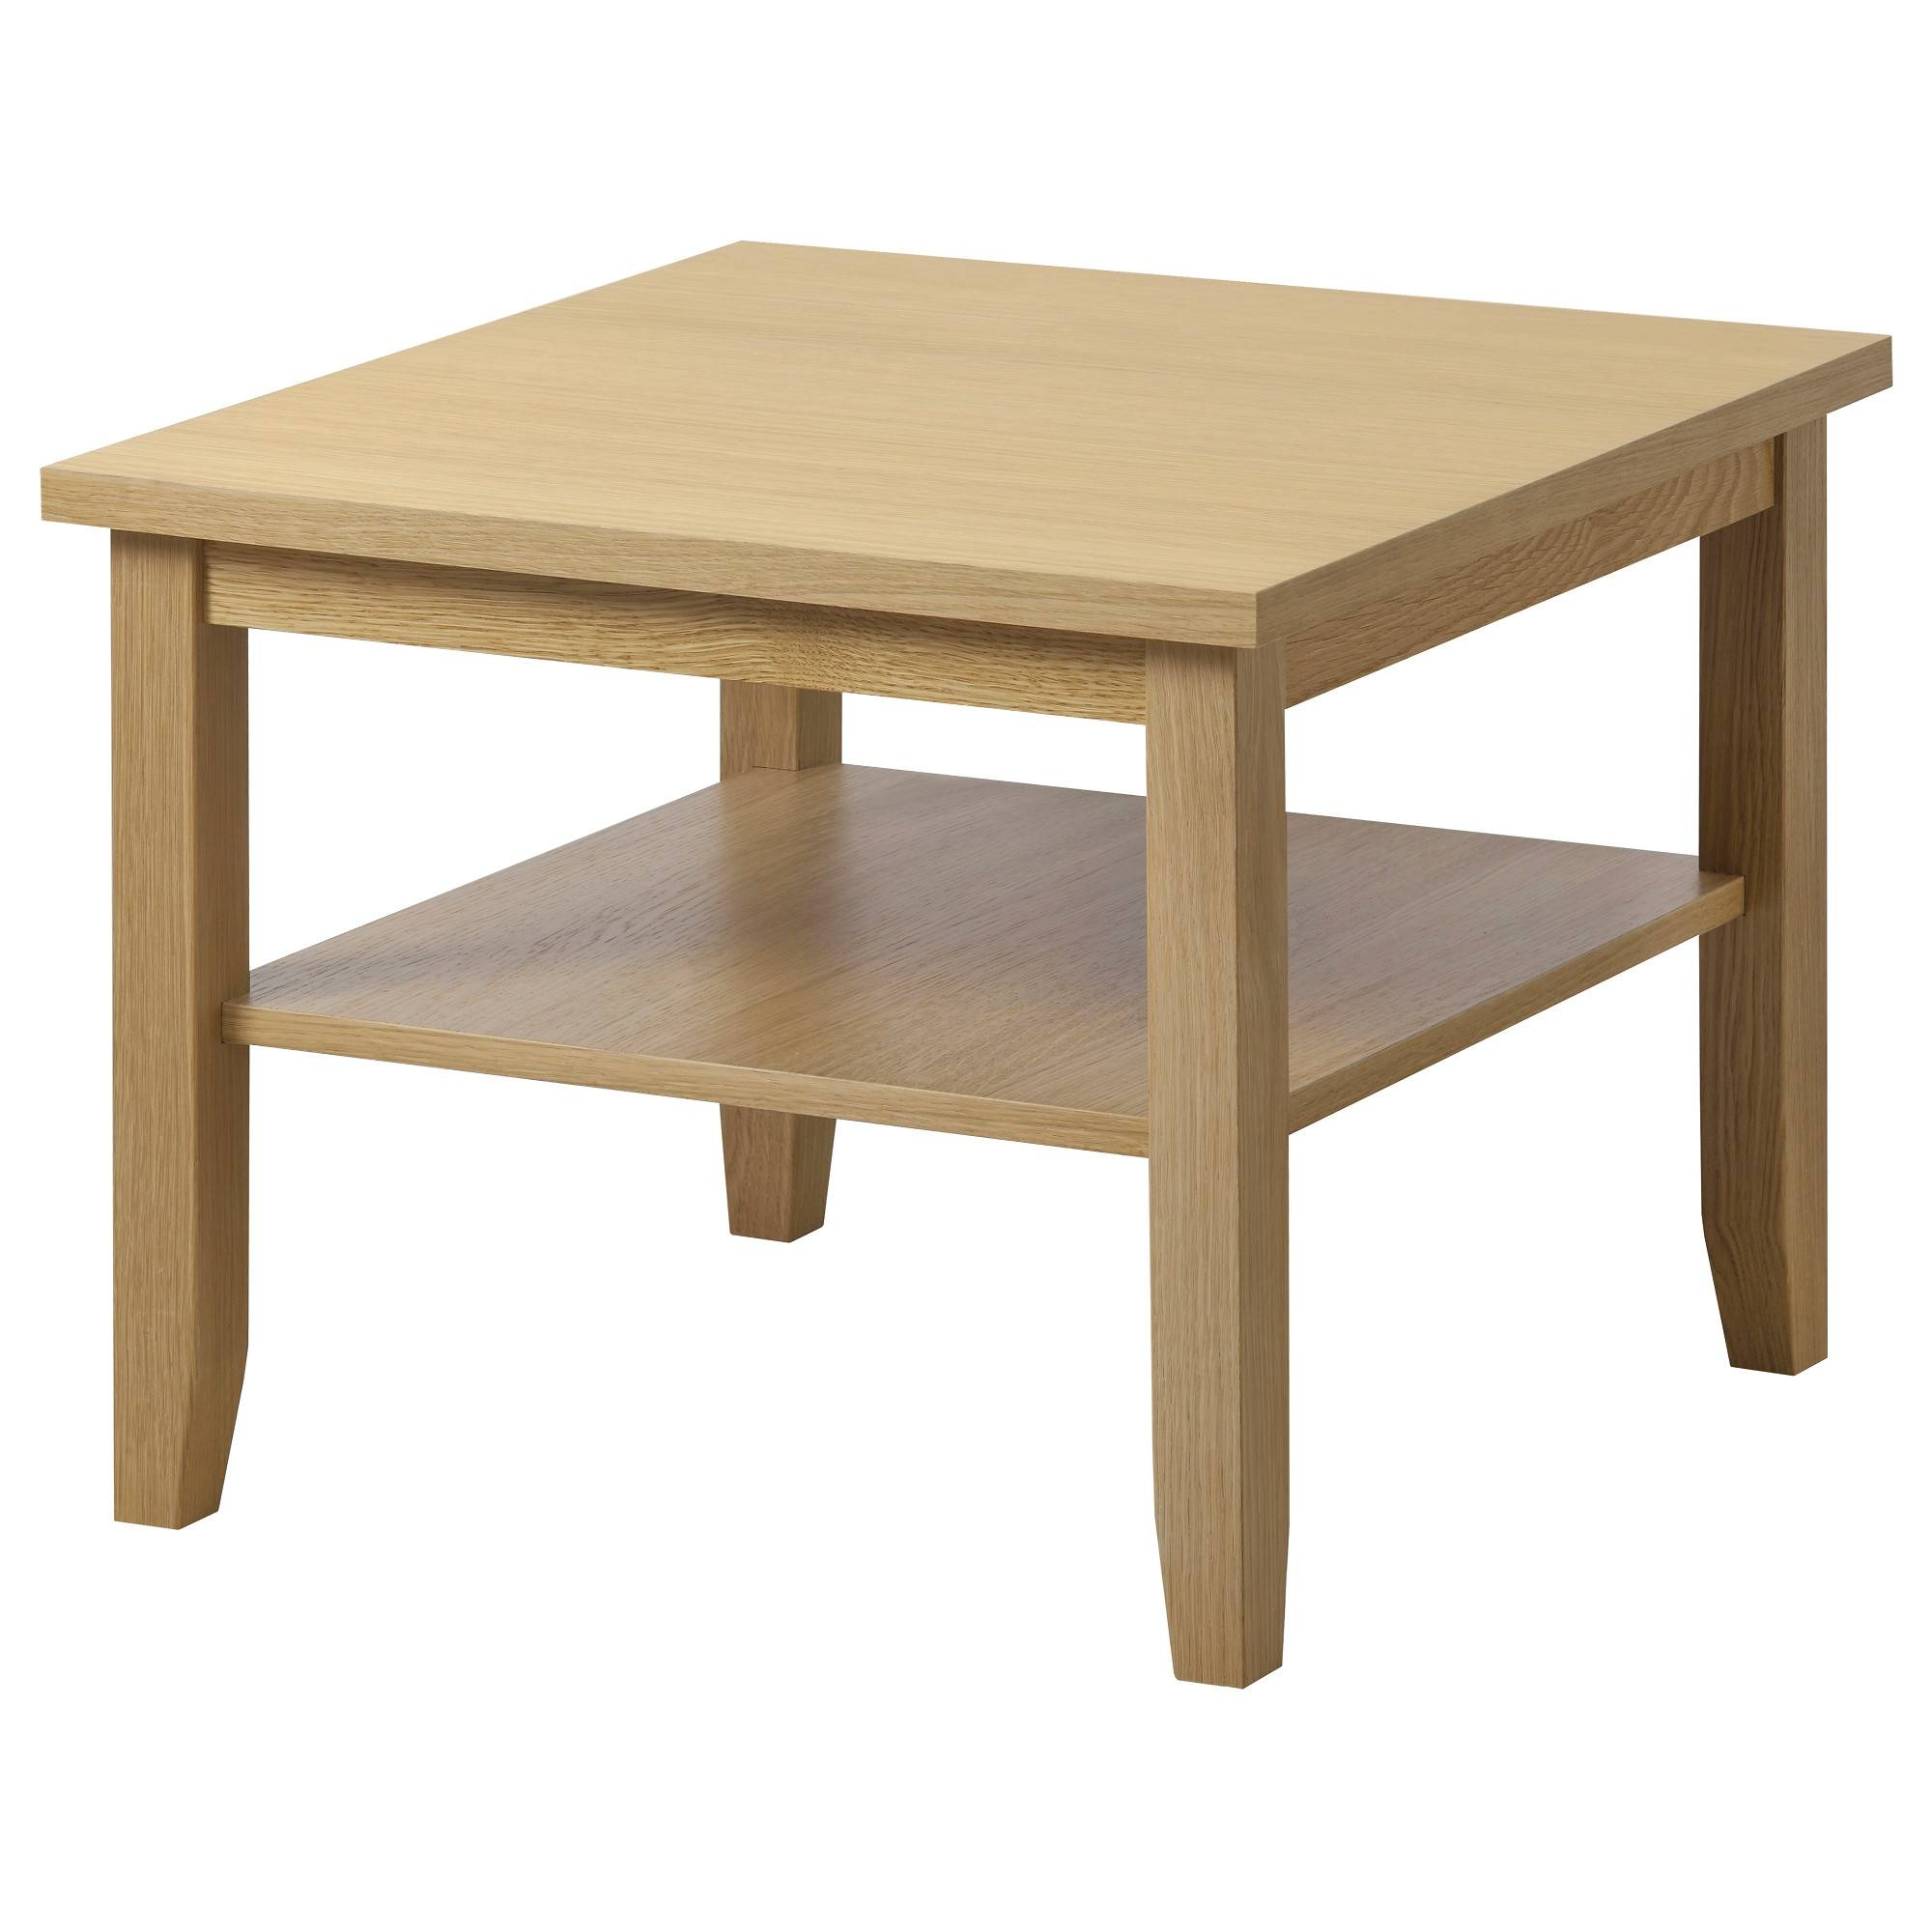 Square Oak Effect Coffee Table | Coffee Tables Decoration Throughout Oak Coffee Table Sets (View 7 of 30)